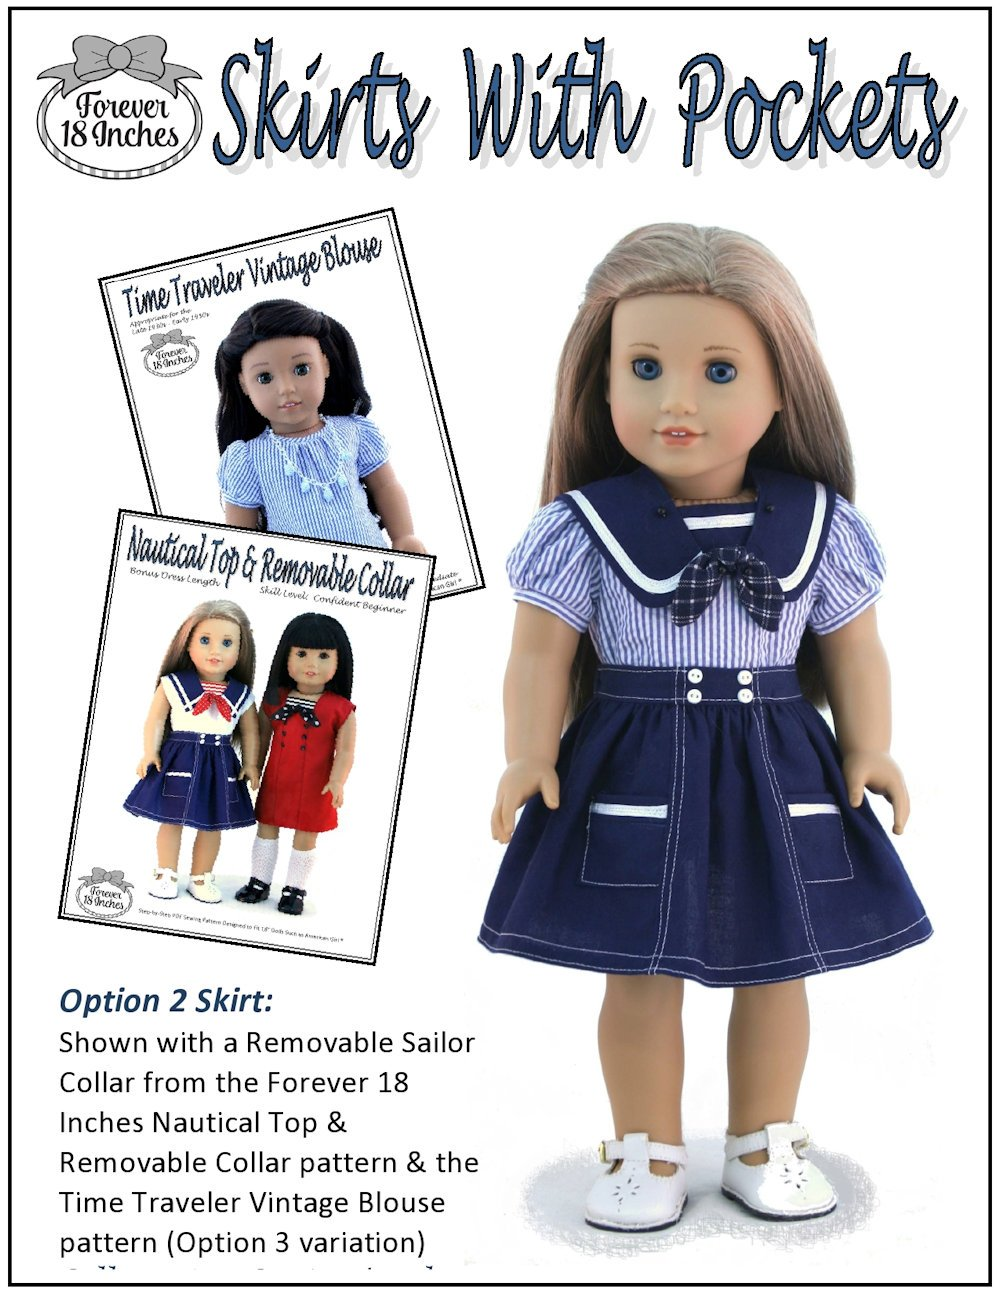 73386e1e9f0 ... pdf doll clothes sewing pattern Forever 18 Inches skirts with pockets  designed to fit 18 inch